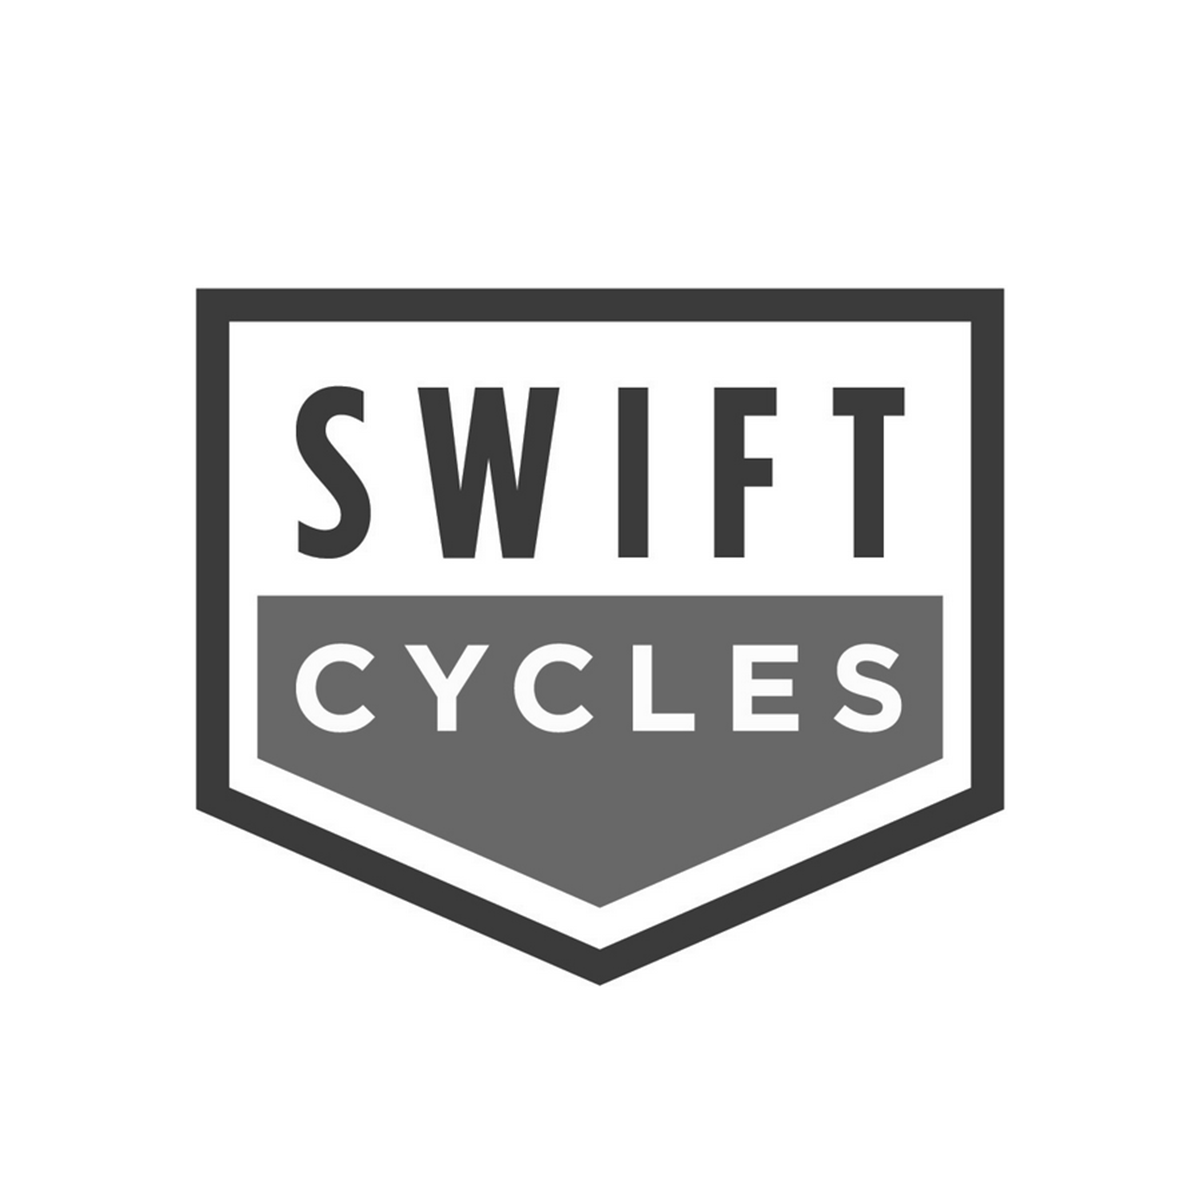 Swift Cycles canvassed_light.png